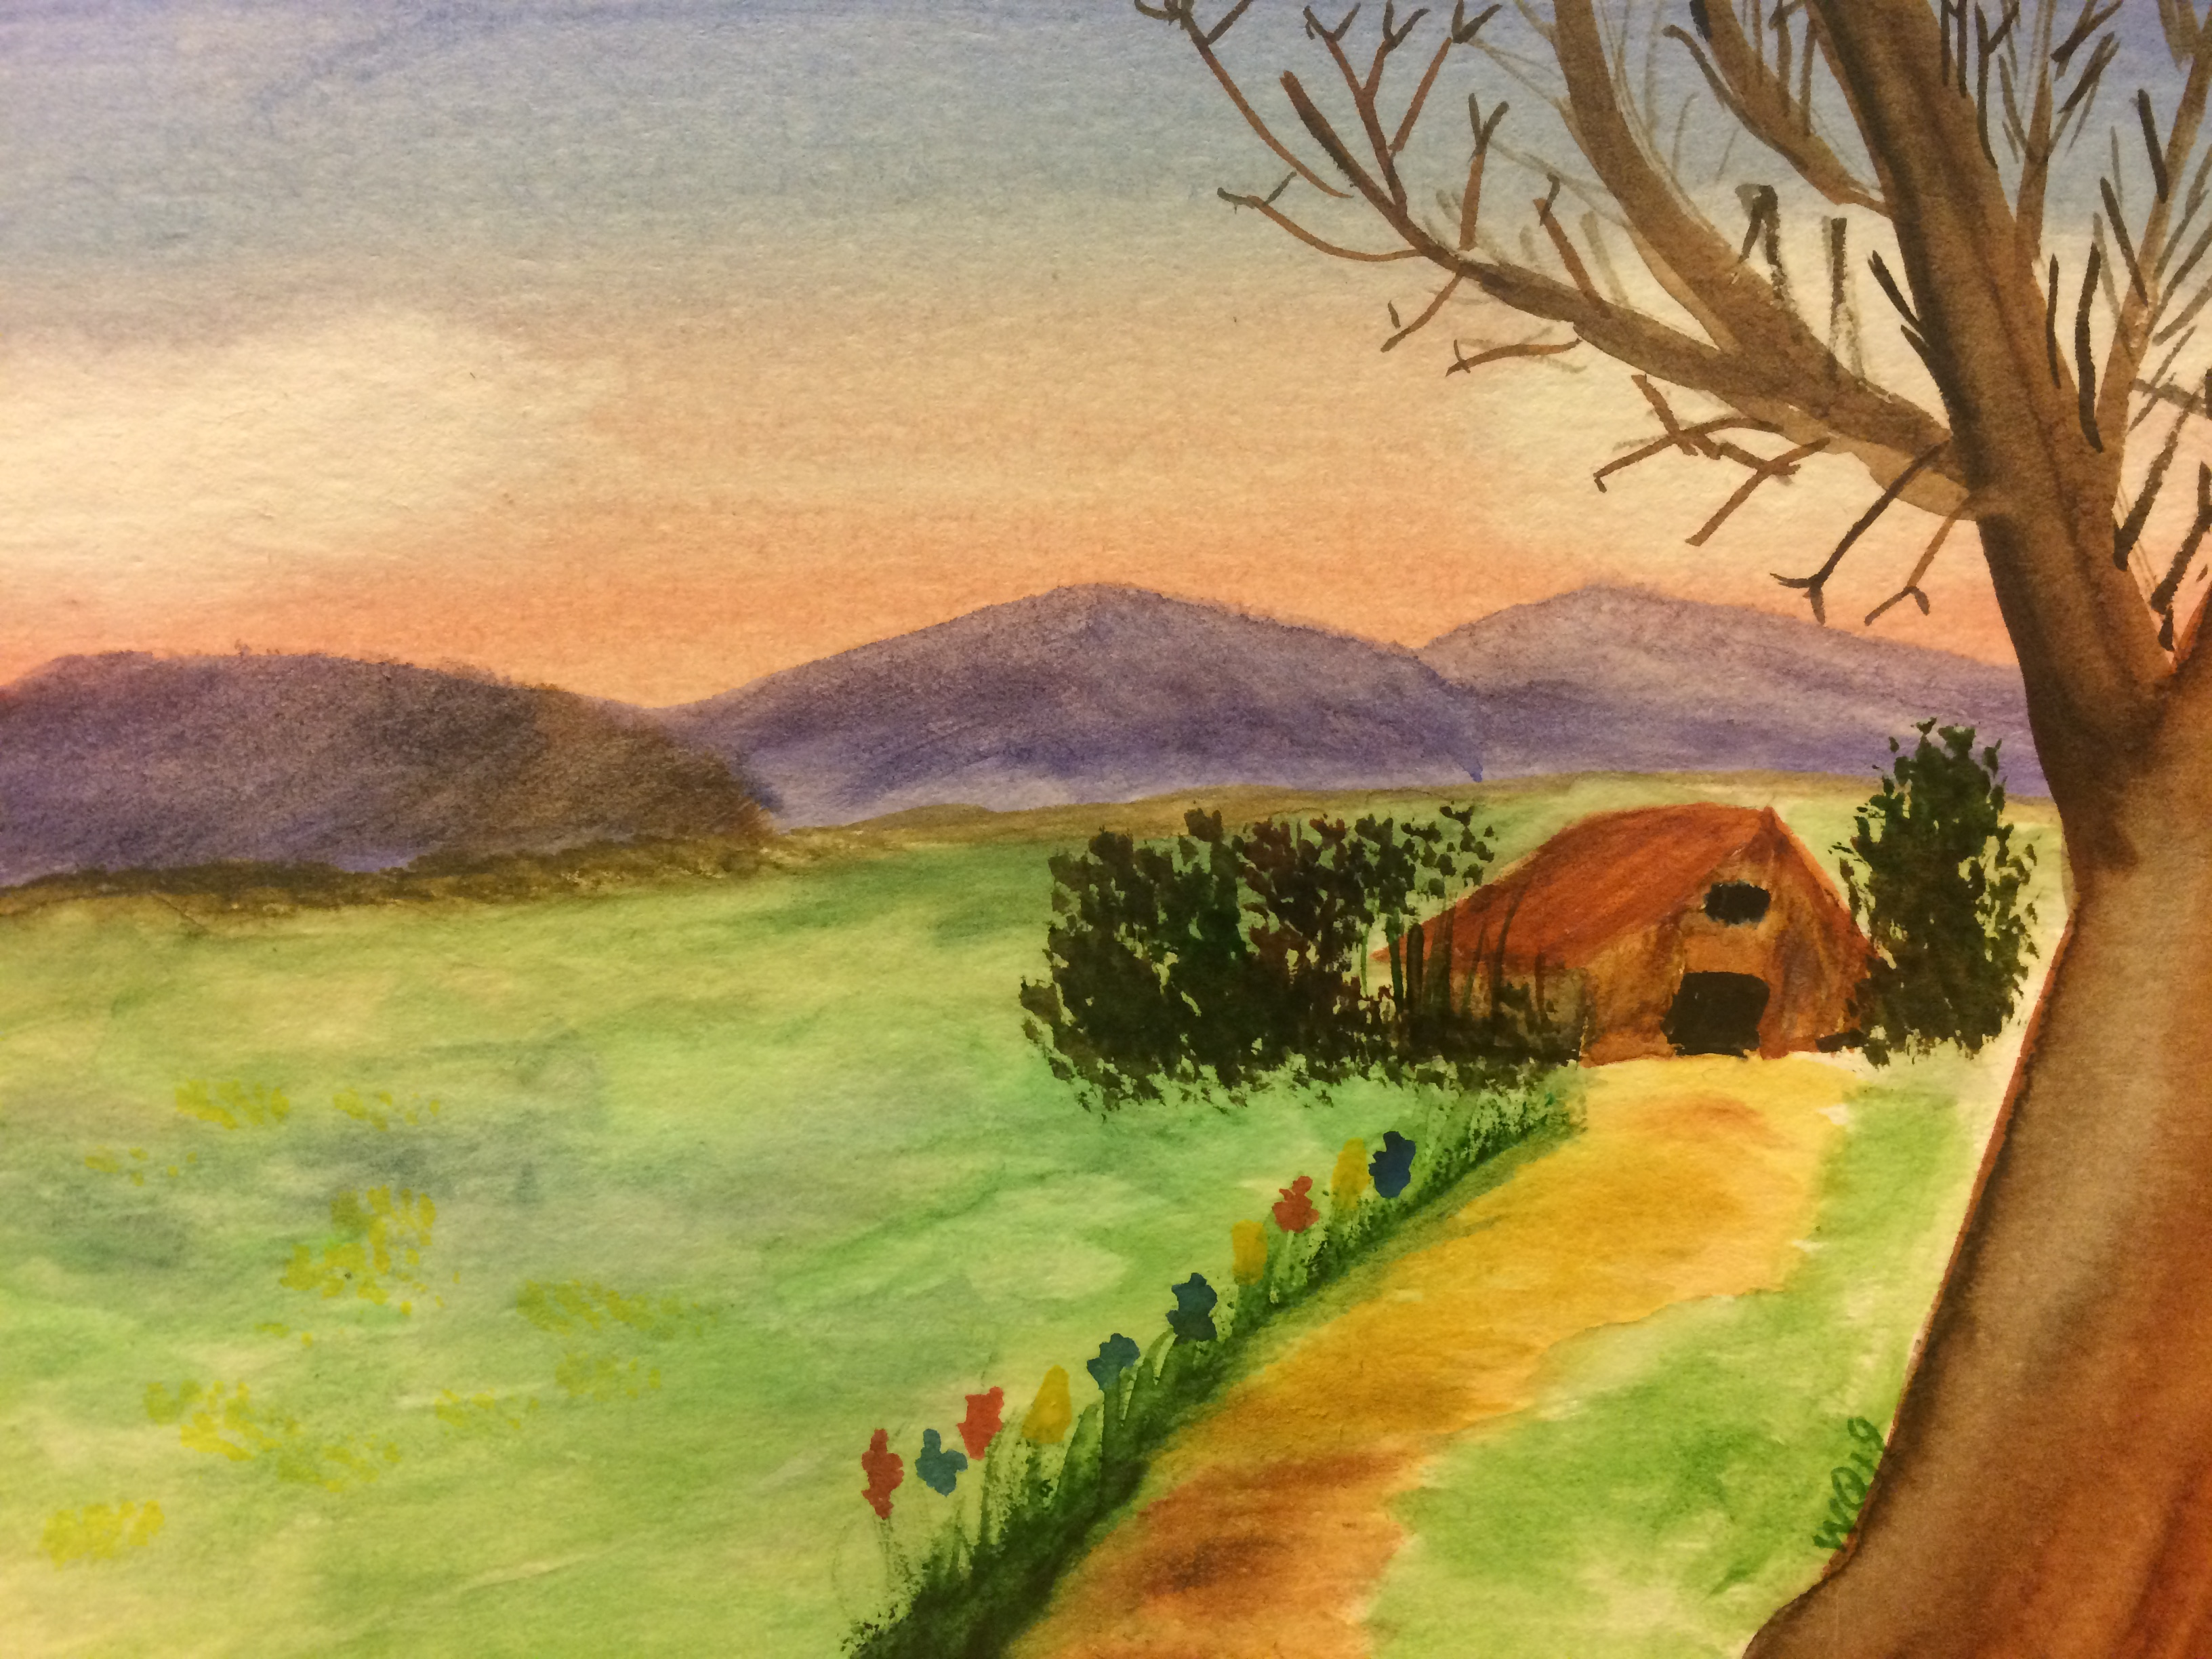 watercolour painting landscape, sunset, mountains, barn and tree